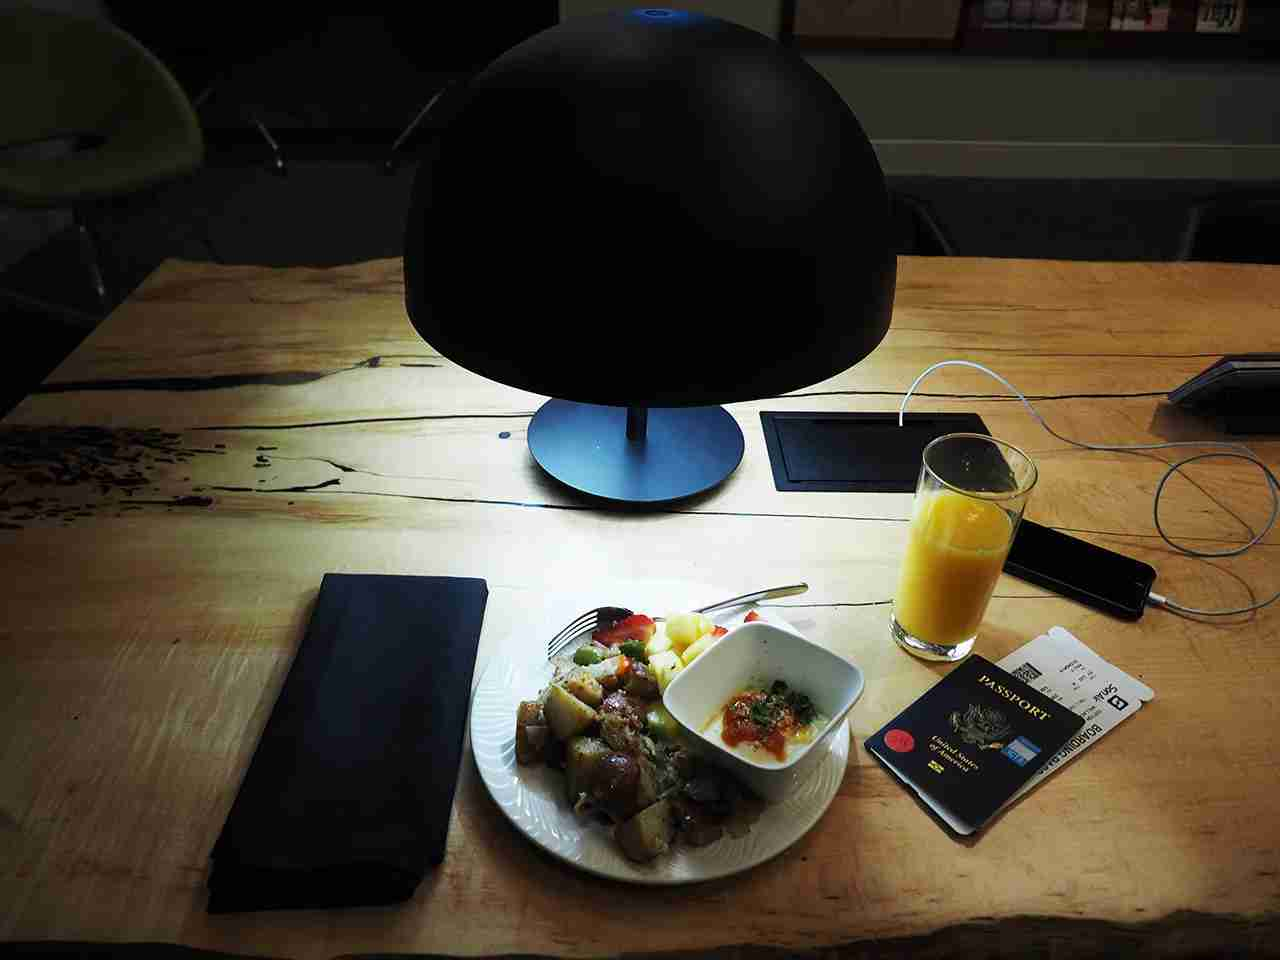 Breakfast was good. I made sure to grab a seat next to a charging port so I could charge my phone not knowing if they